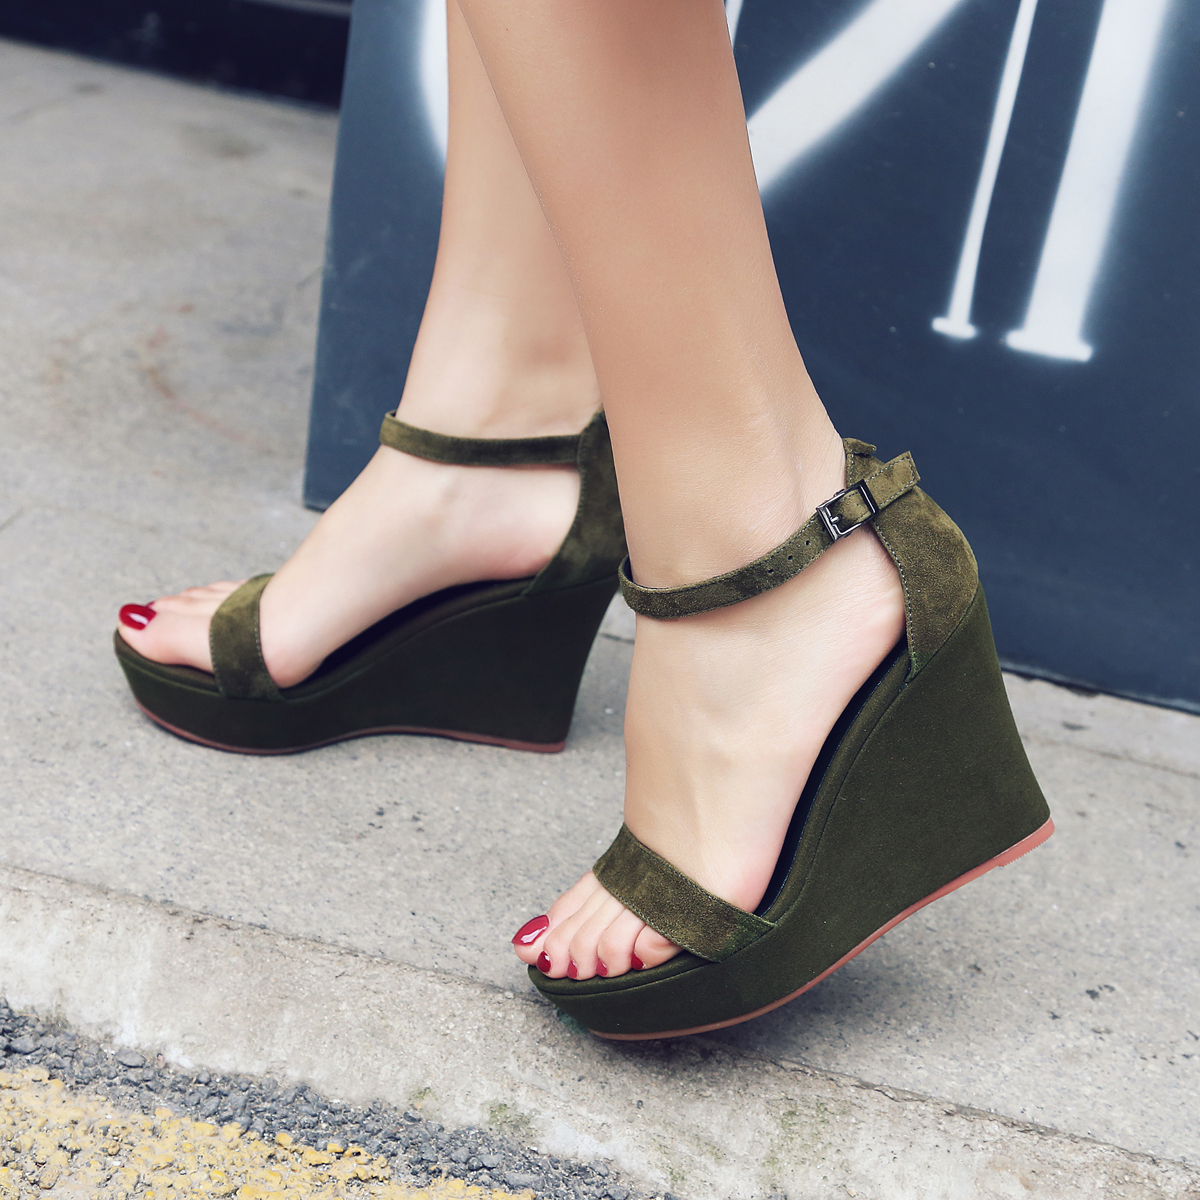 0d8292acba35 US  46 - 2018 European and American fashion style wedges party shoes army  green women s sandals with a word elegant belt of pure color simple heighten  ...